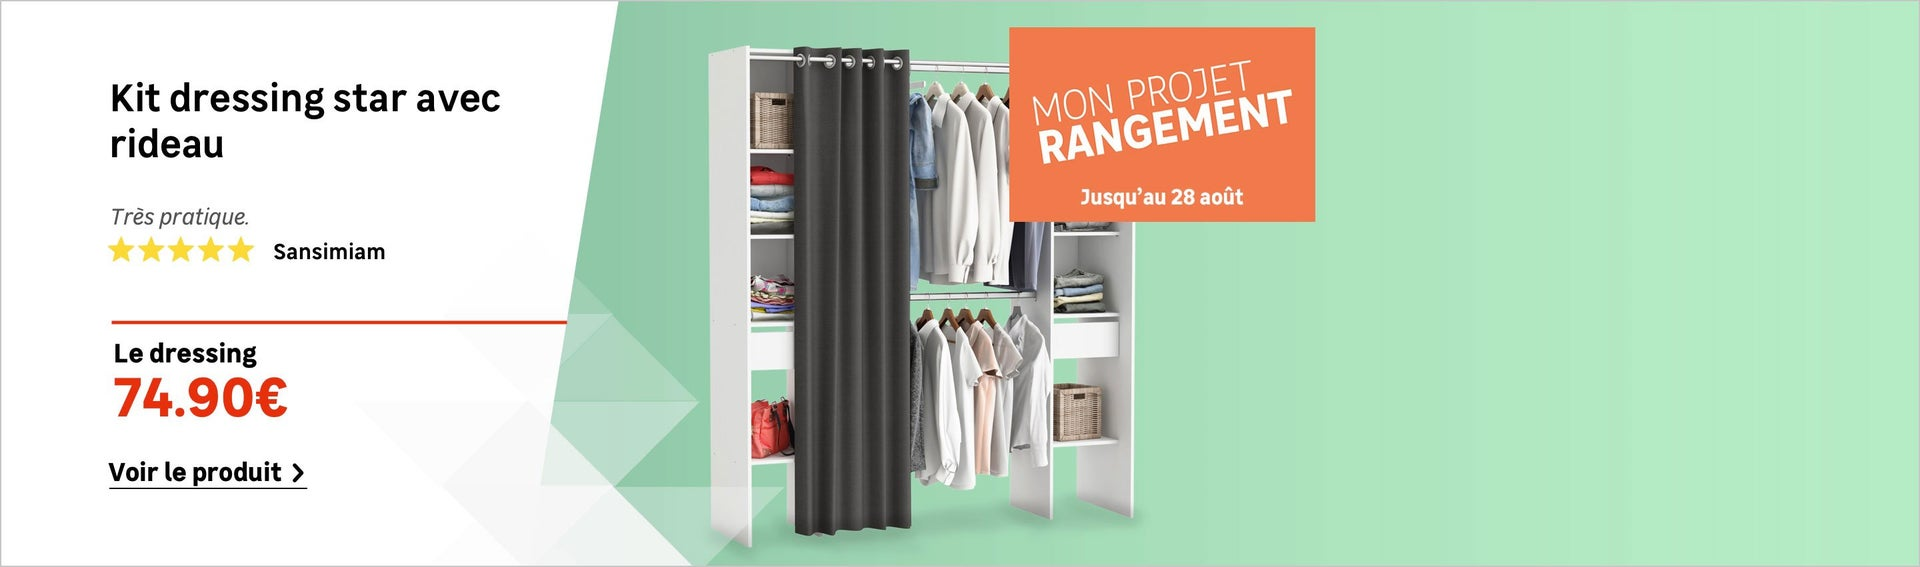 Amenagement dressing leroy merlin les derni res id es de design et int ressantes for Comamenagement placard leroy merlin